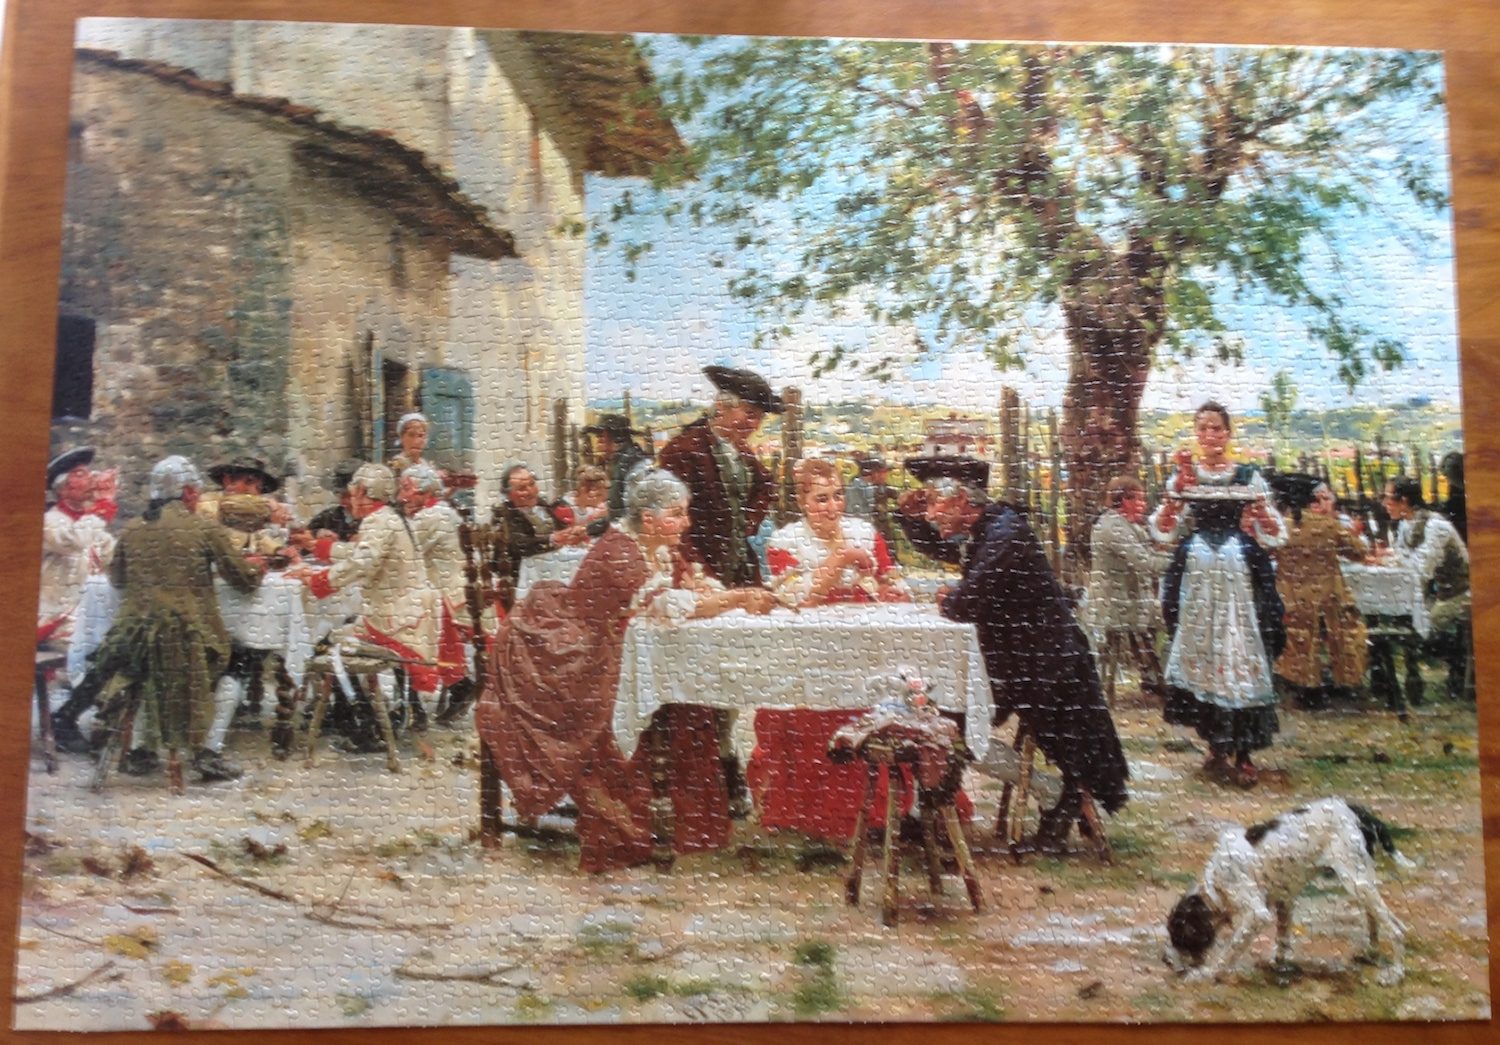 Image of the Assembled Puzzle 2000, Fame, The Game of Cards, by Raffaello Sorbi